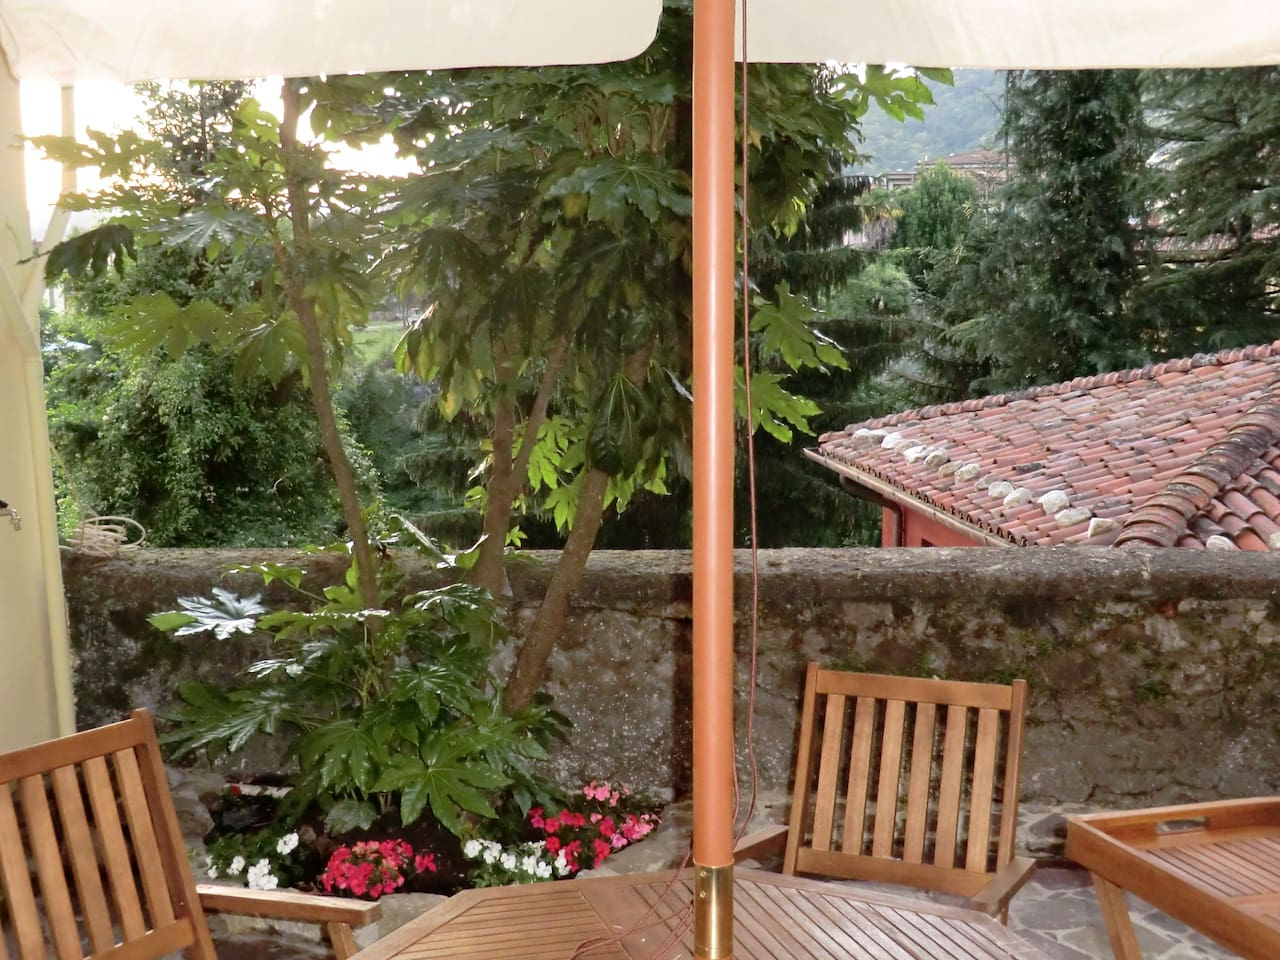 BARGA Old Town - Bright House with Garden - Houses for Rent in Barga ...